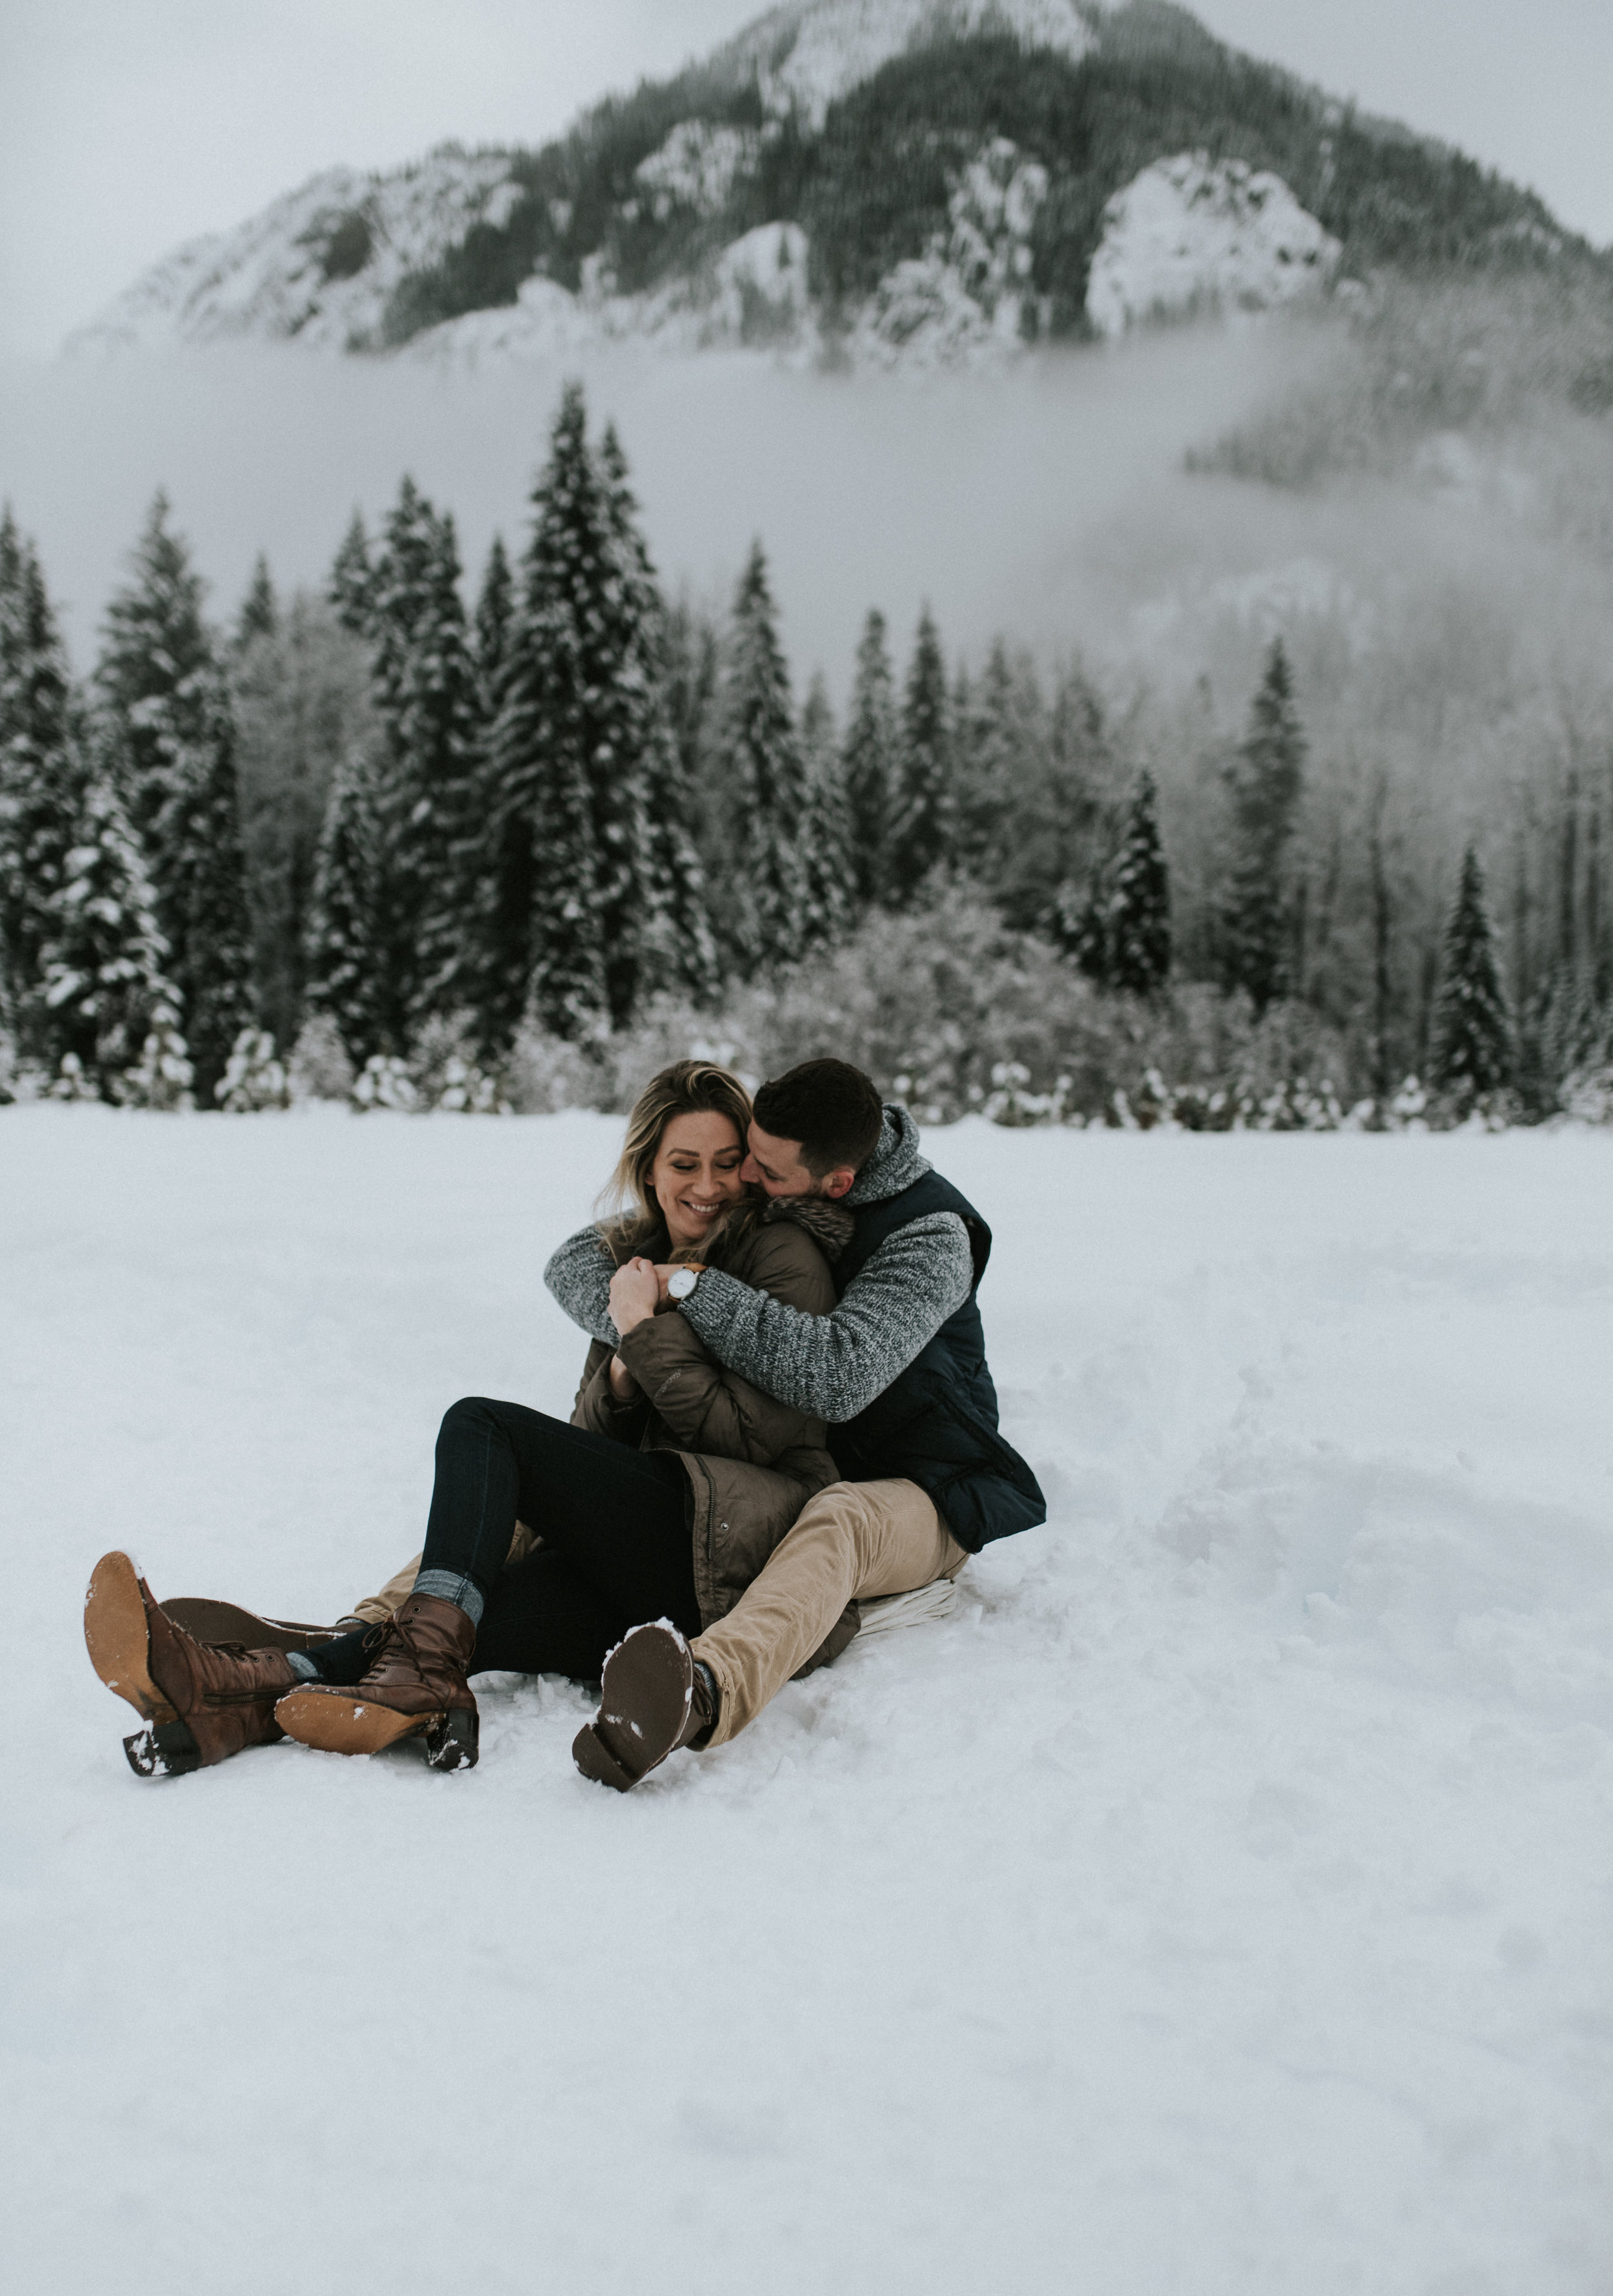 Winter snowy adventure engagement session in the North Cascade mountains.